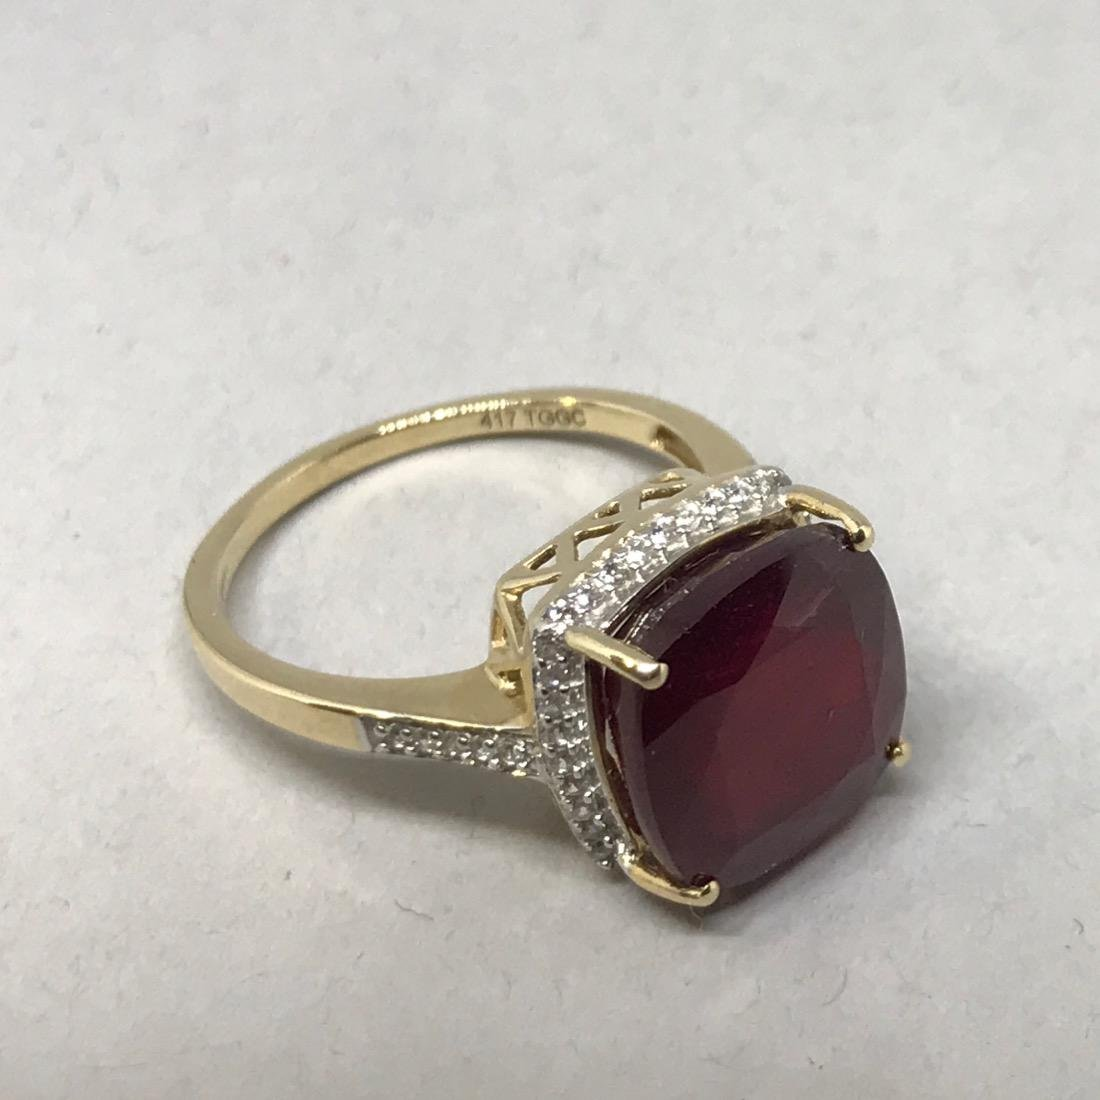 10K Gold Ring with Large - 4